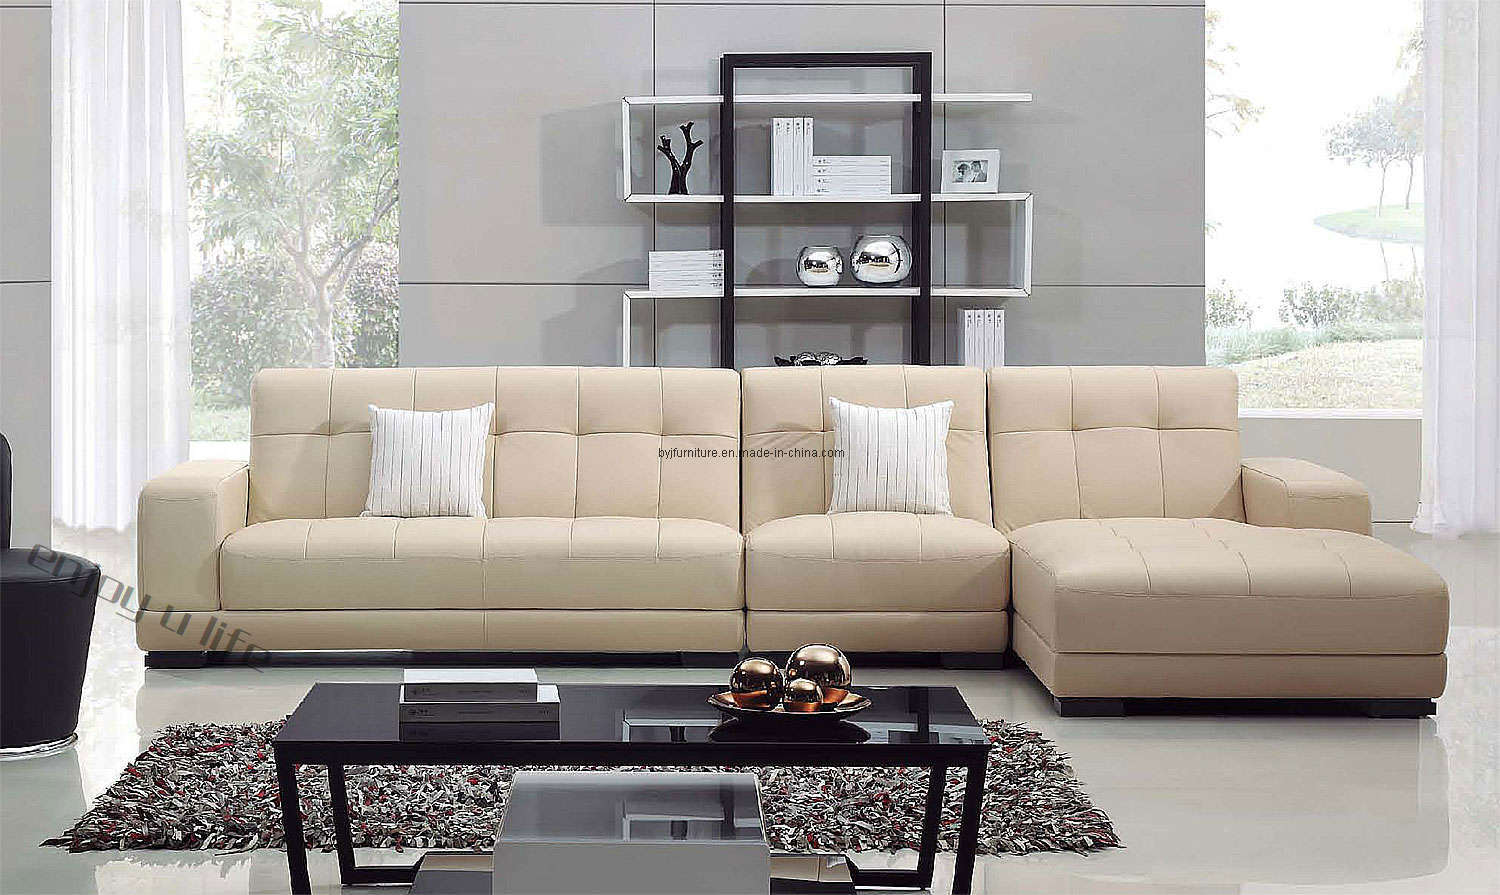 Sofas for living room 2017 grasscloth wallpaper for 2 sofa living room ideas